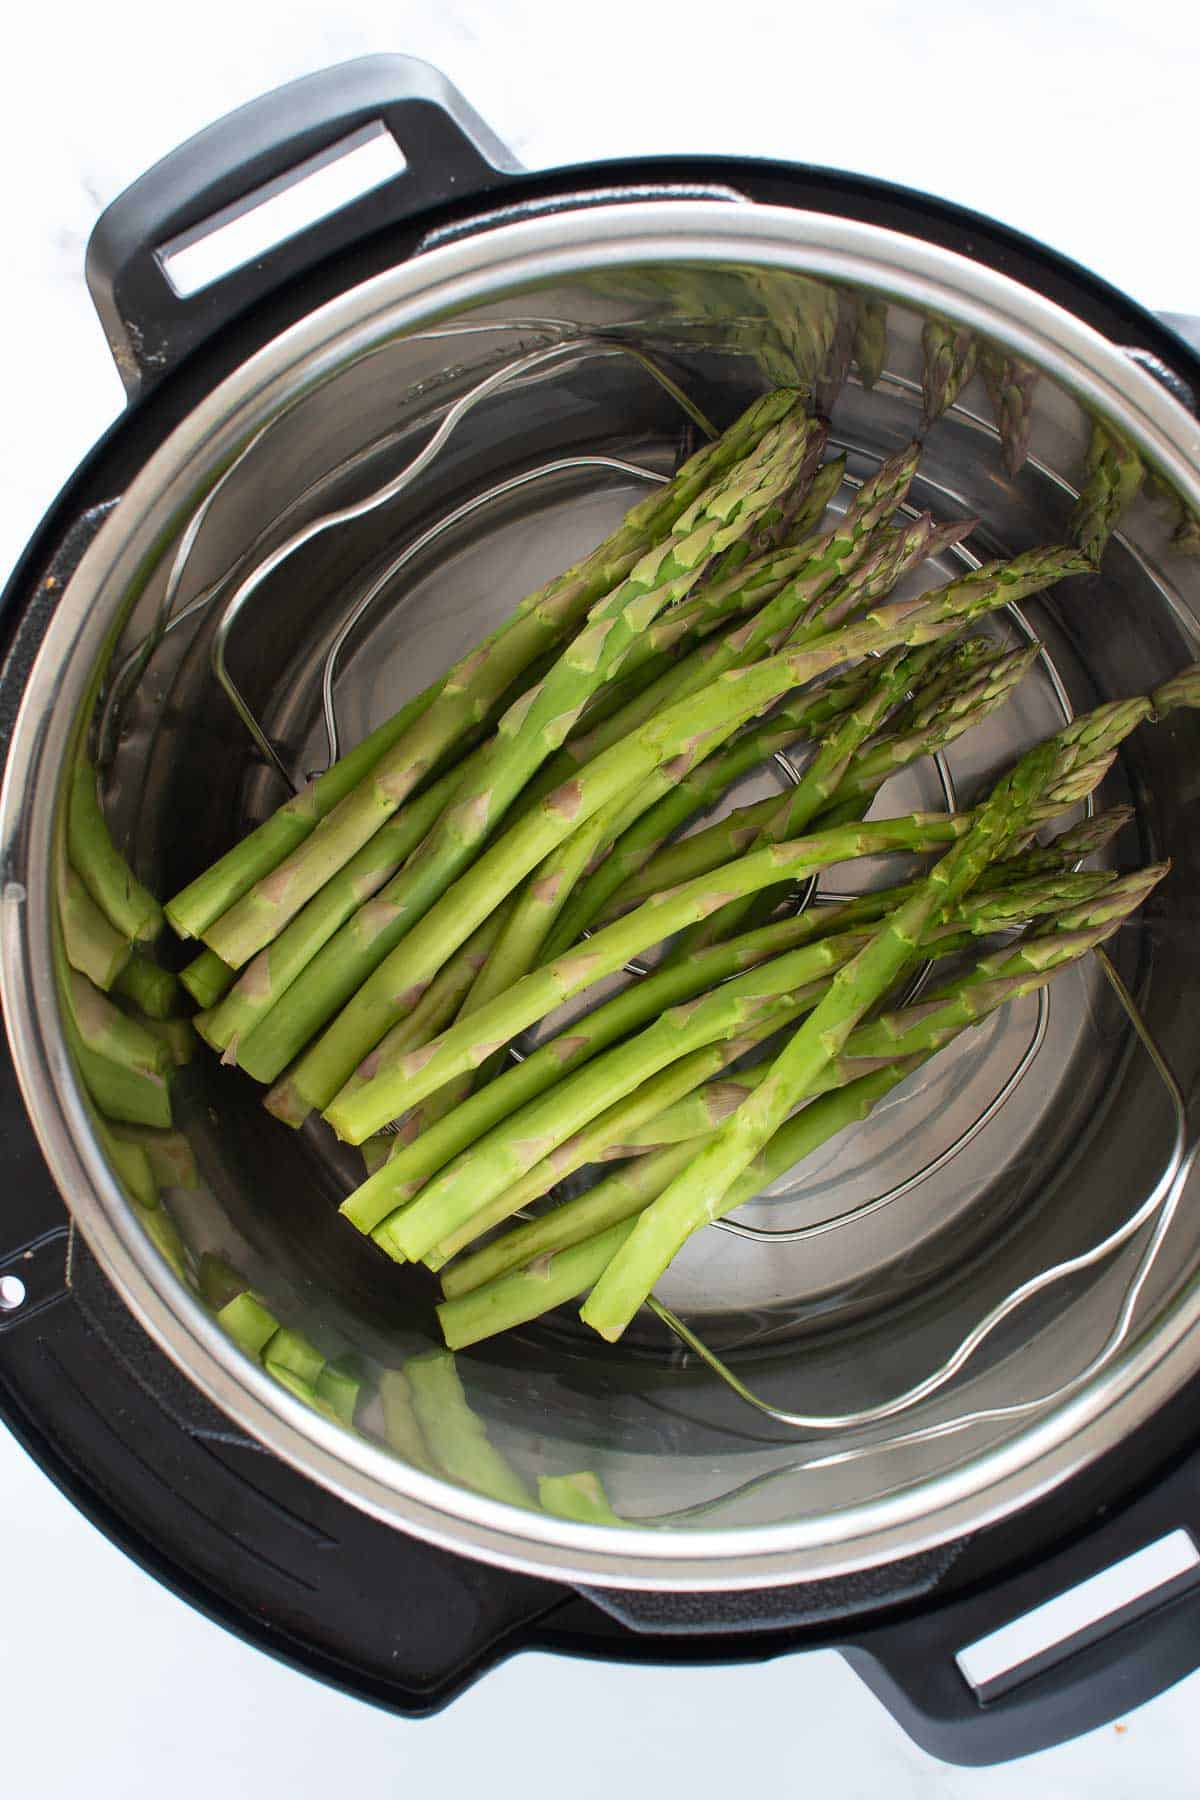 Asparagus in an instant pot.